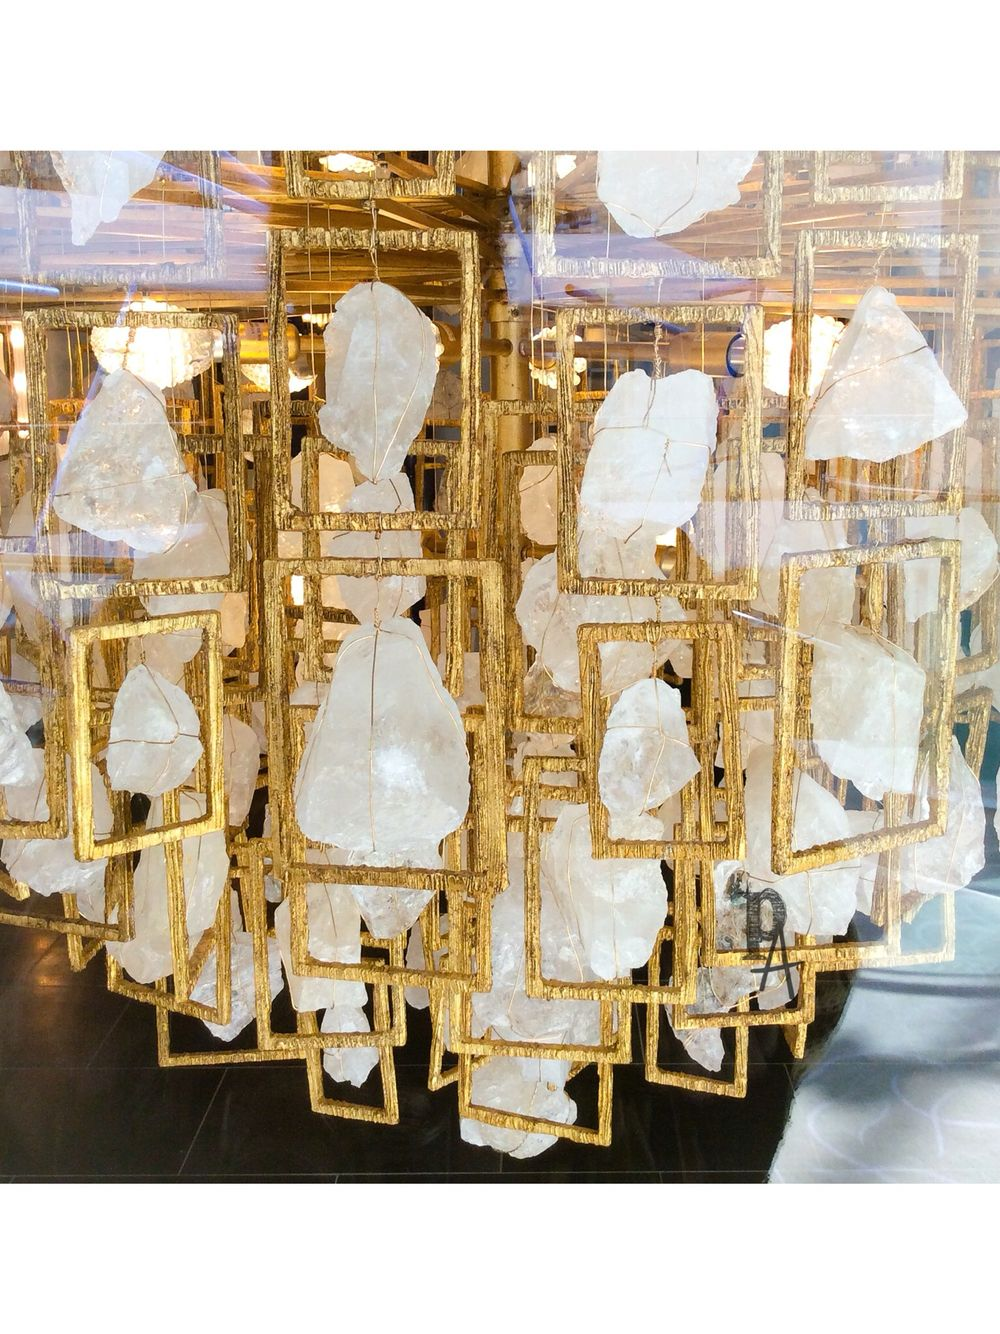 Gold Leaf And Chucks Of Quartz Crystals Rocking The Petra Bel Air Lighting Fixture By Wired Designs